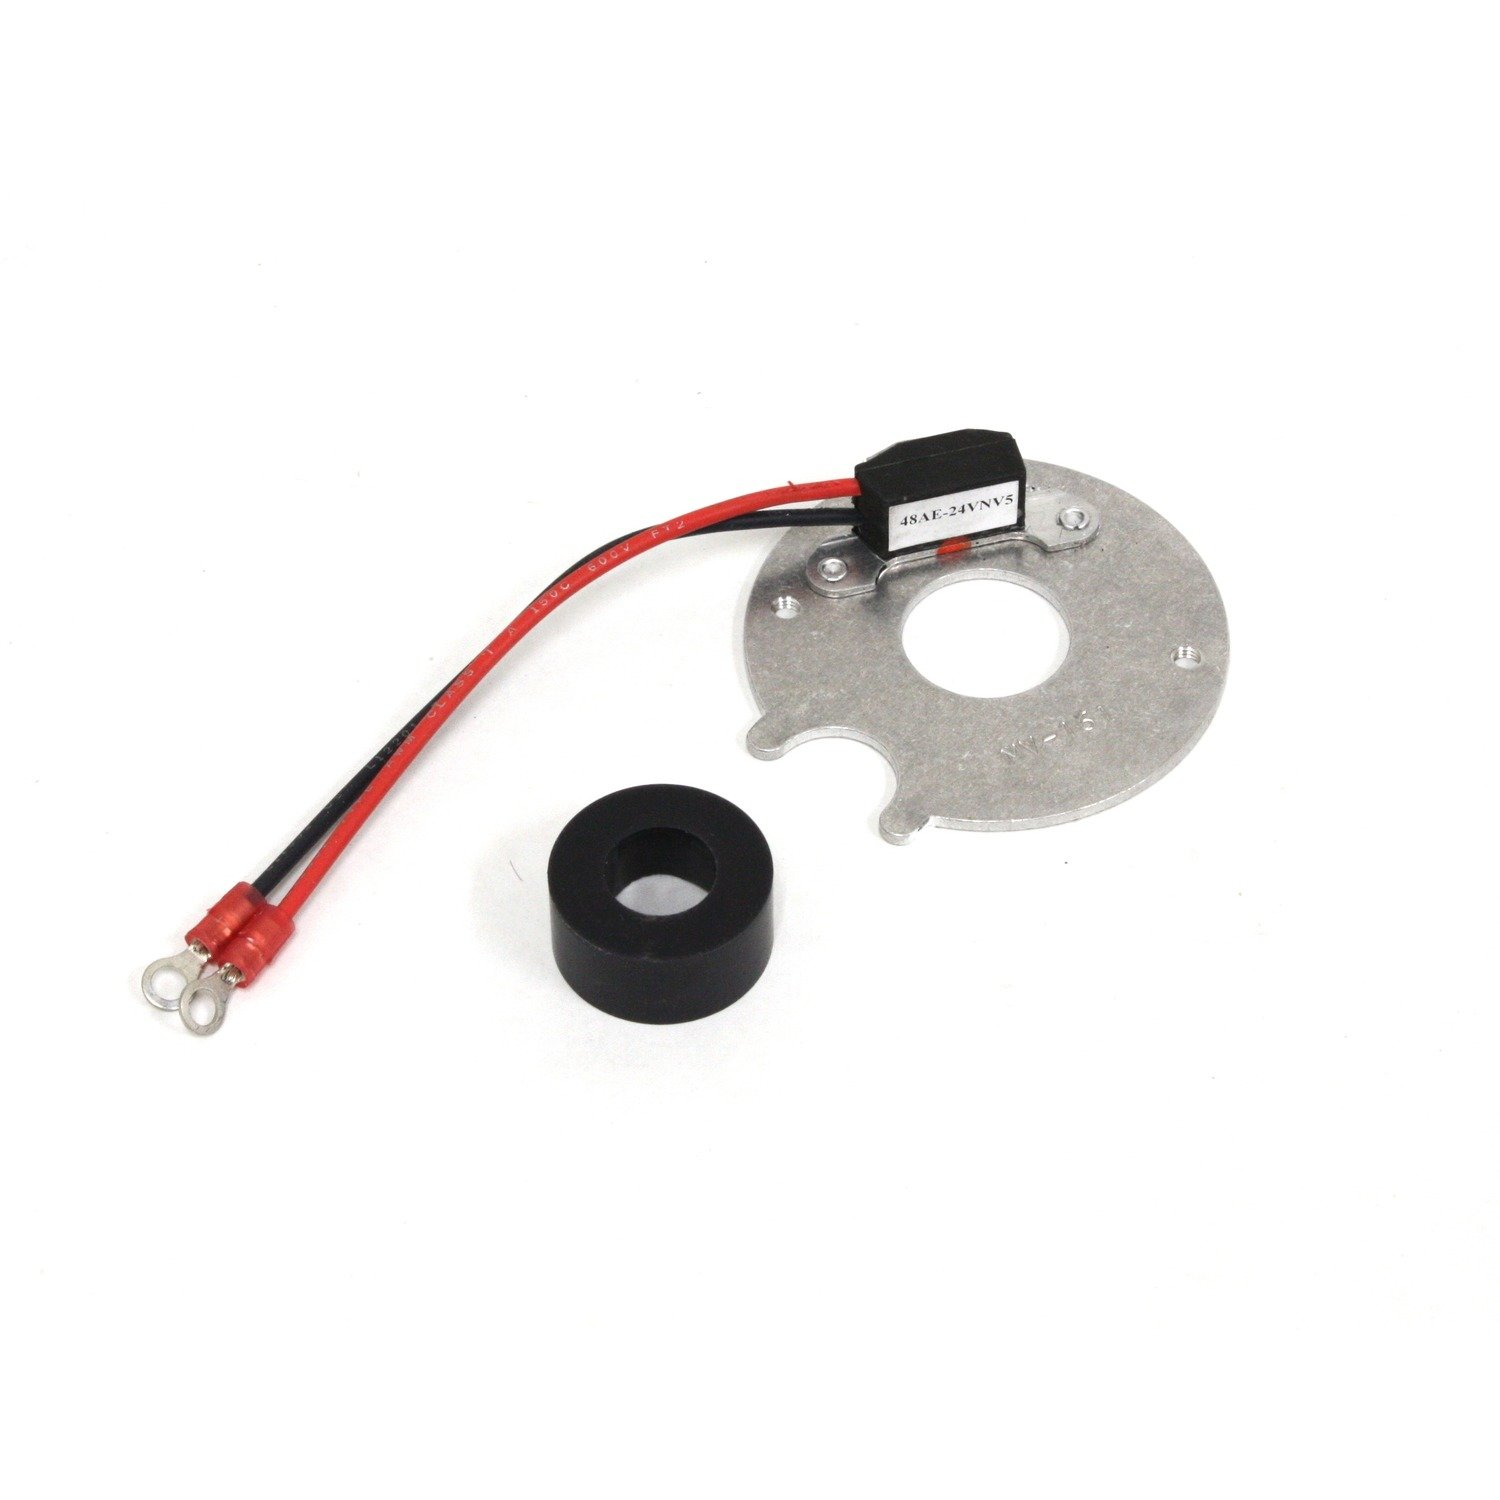 Pertronix MV-141A 24V Ignitor for Autolite 4 Cylinder Engine by Pertronix